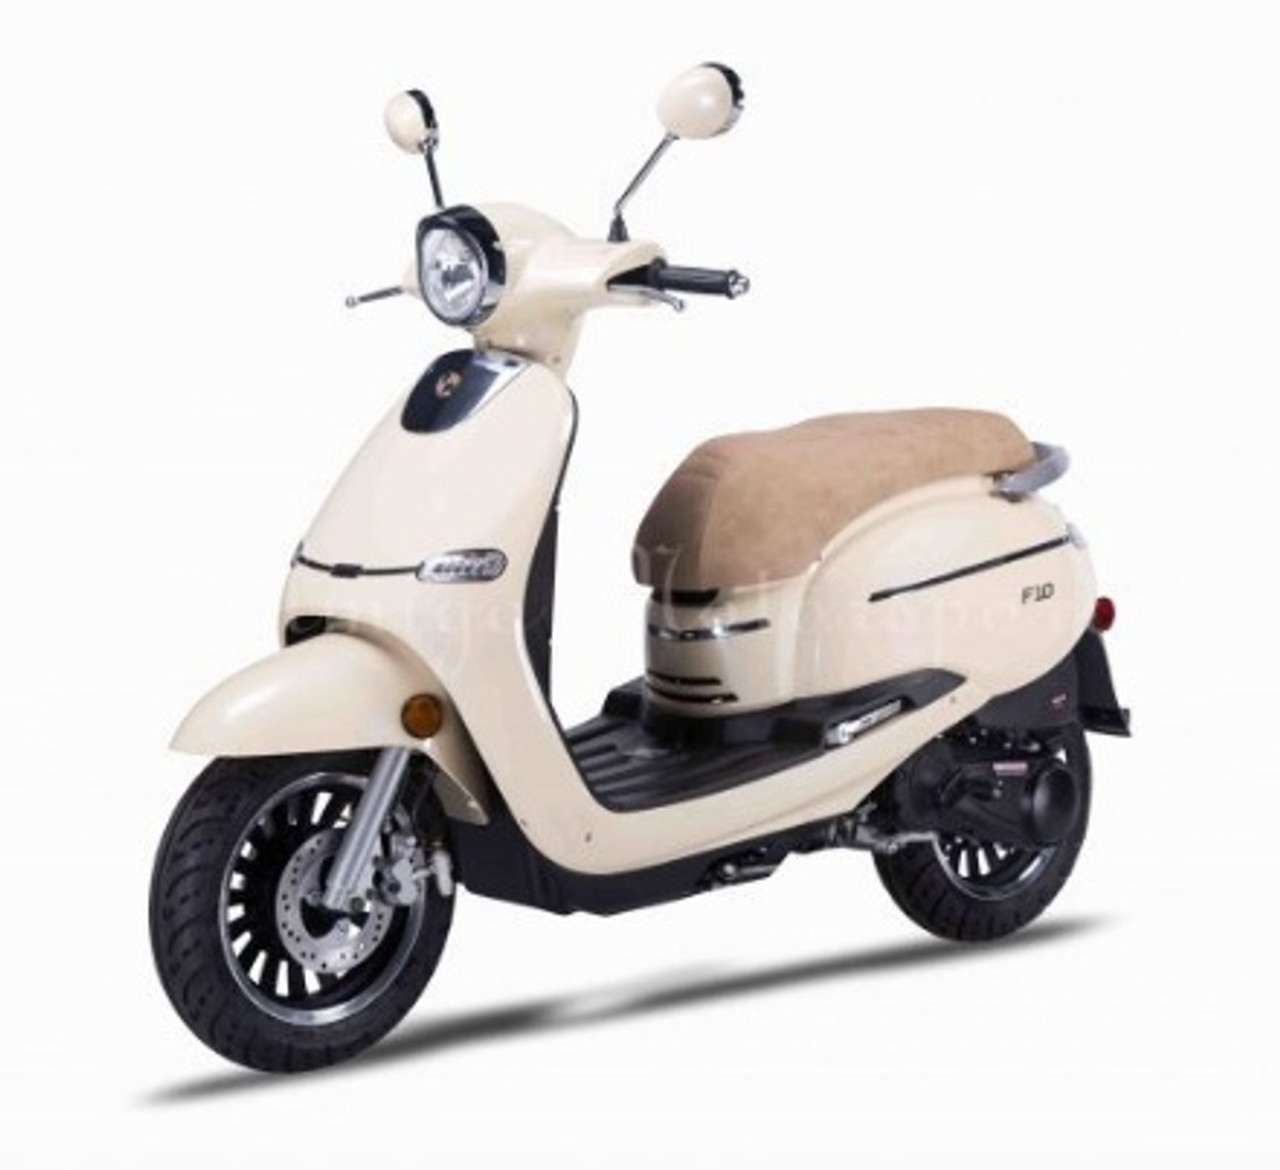 Amigo 2017 F10-50 49cc Street Legal Scooter, 4 stroke with 8.5 HP Air Cooled